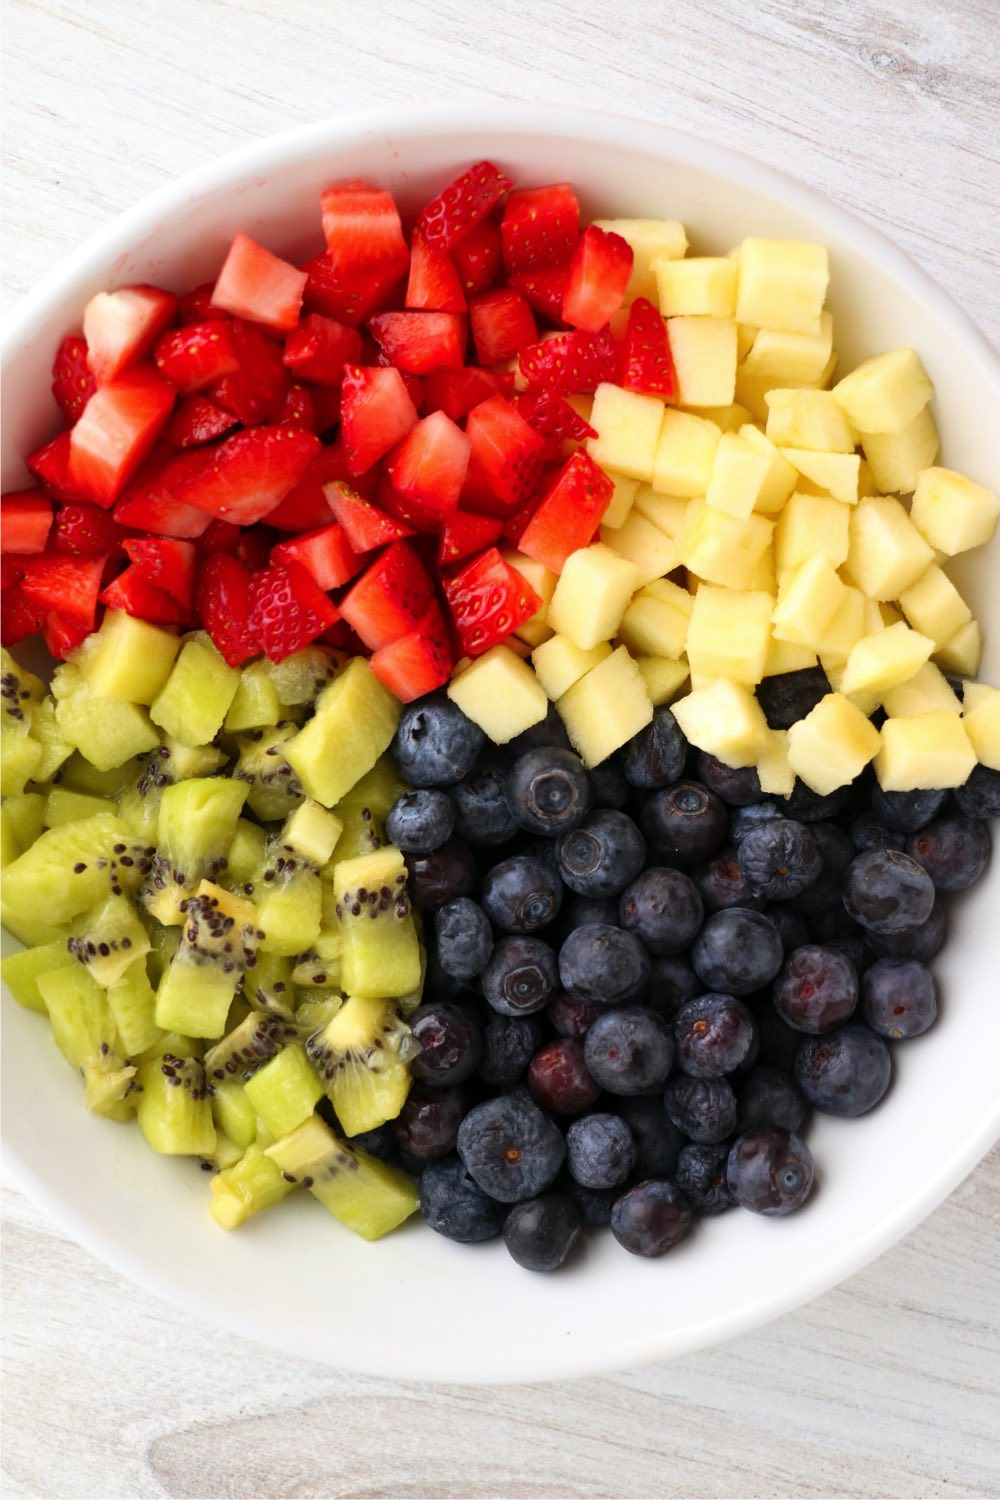 chopped up fruit in bowl